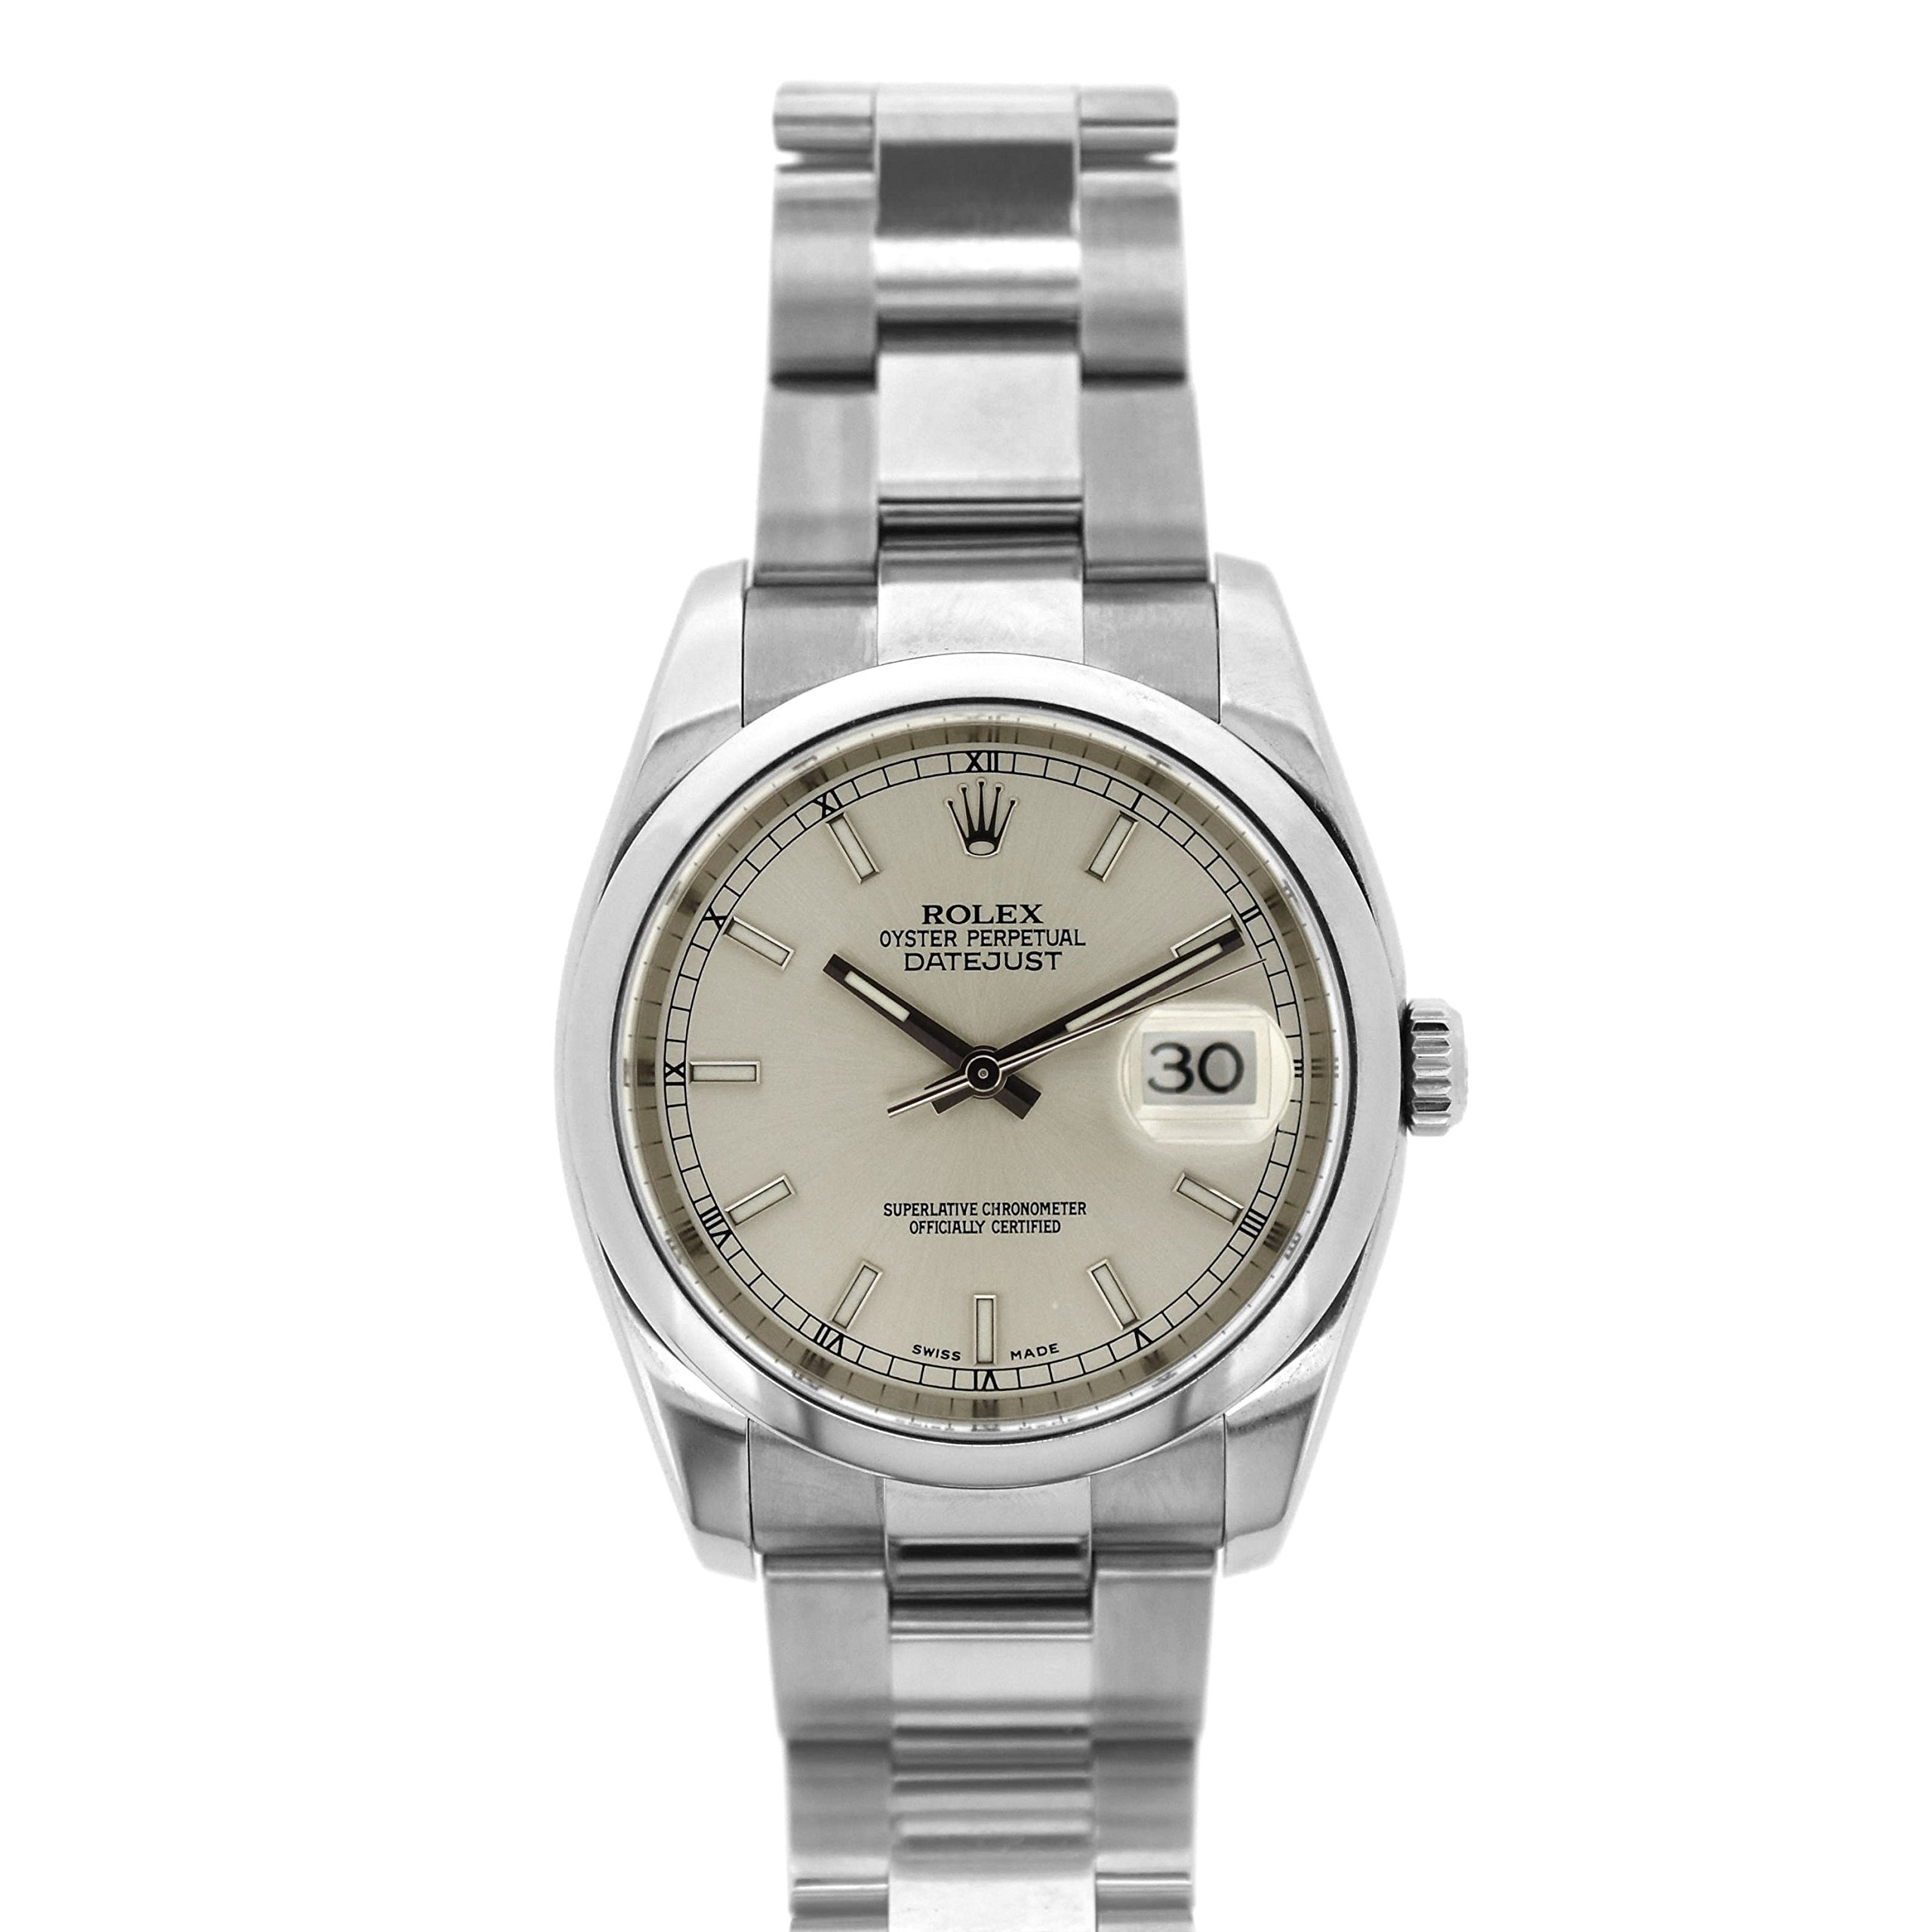 Rolex Datejust swiss-automatic mens Watch 116200 (Certified Pre-owned)